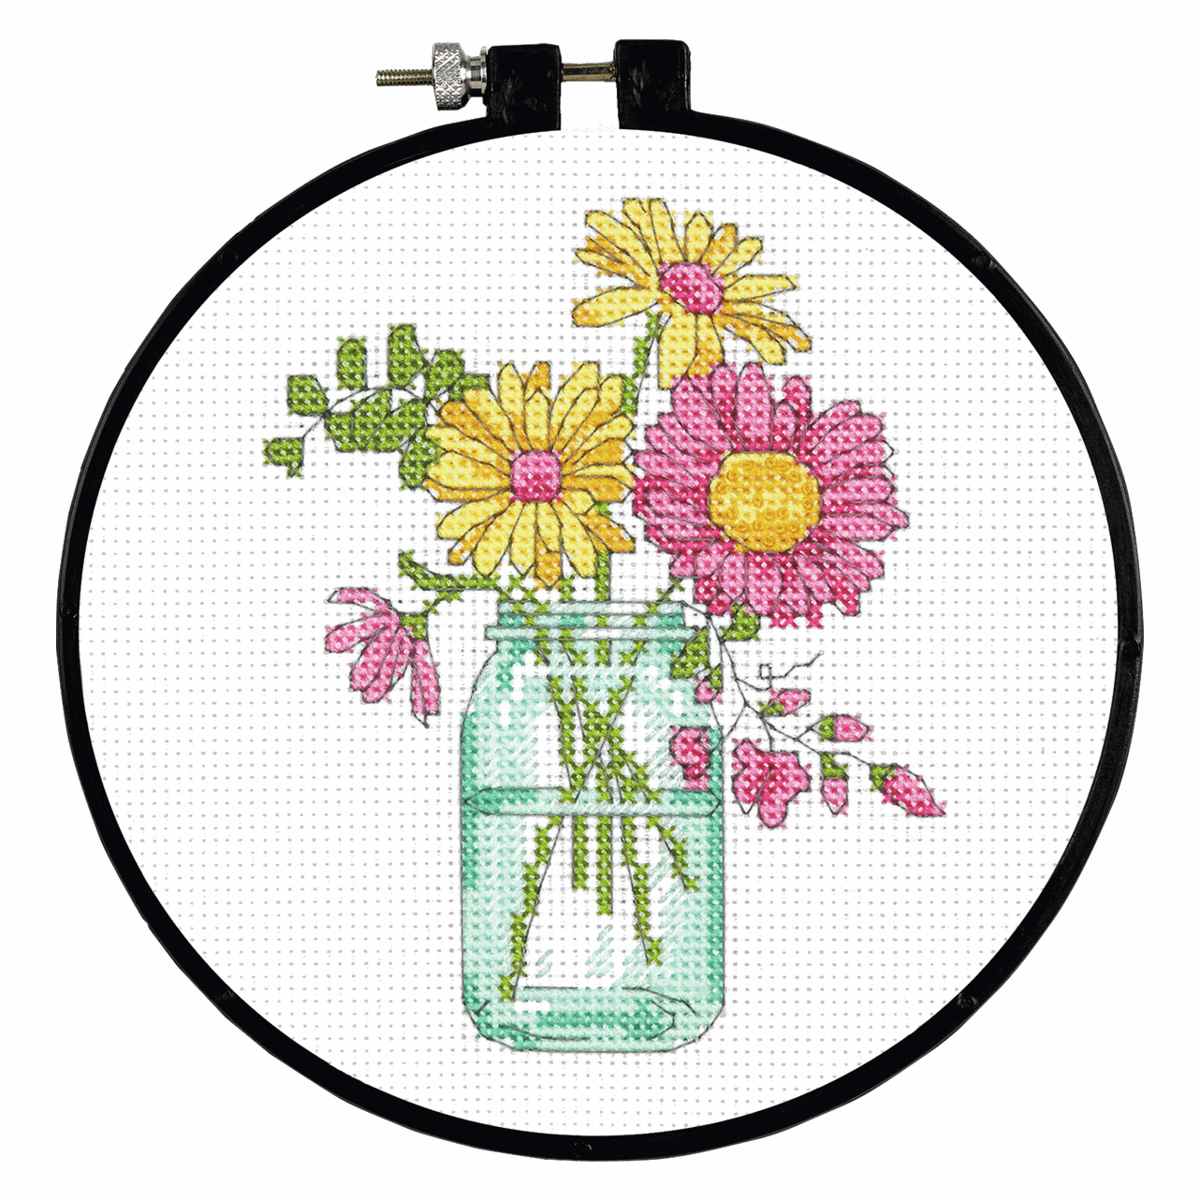 Picture of Learn-a-Craft: Counted Cross Stitch Kit with Hoop: Summer Flowers